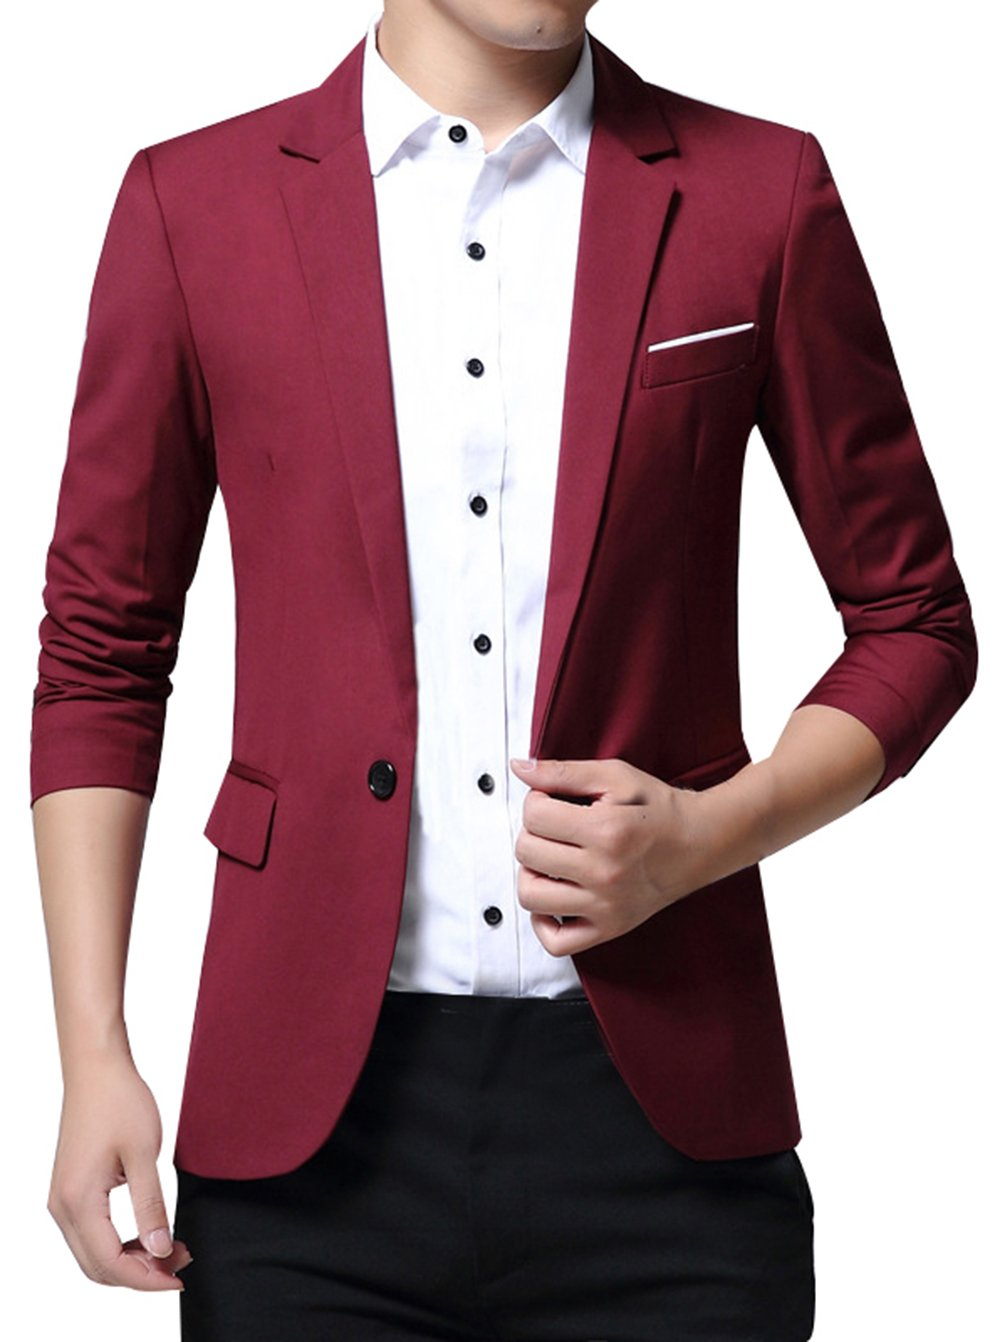 JiaYou Men Boy Slim Fit Suits Casual One/Two Buttons Flap Pockets Solid Blazer Jacket USNB026